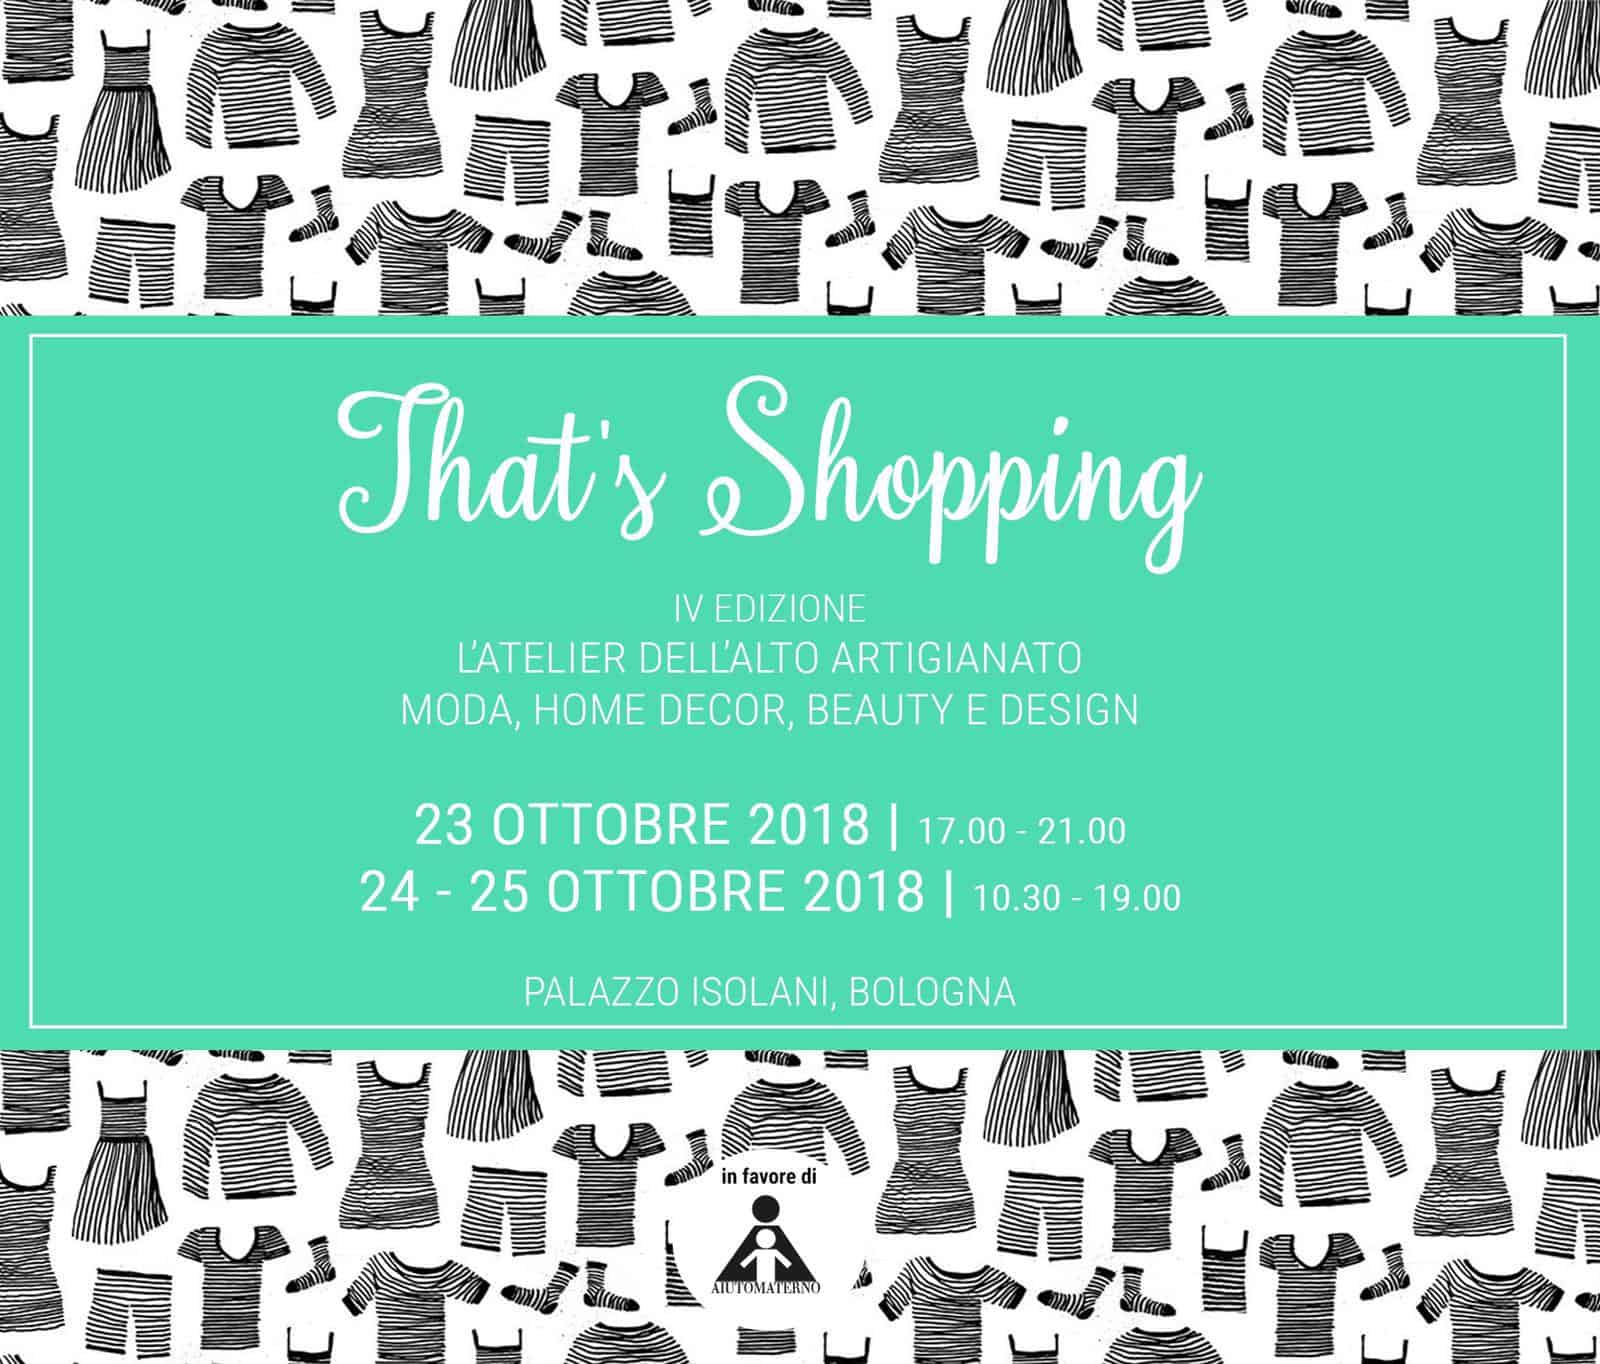 Beneficenza è: that's shopping